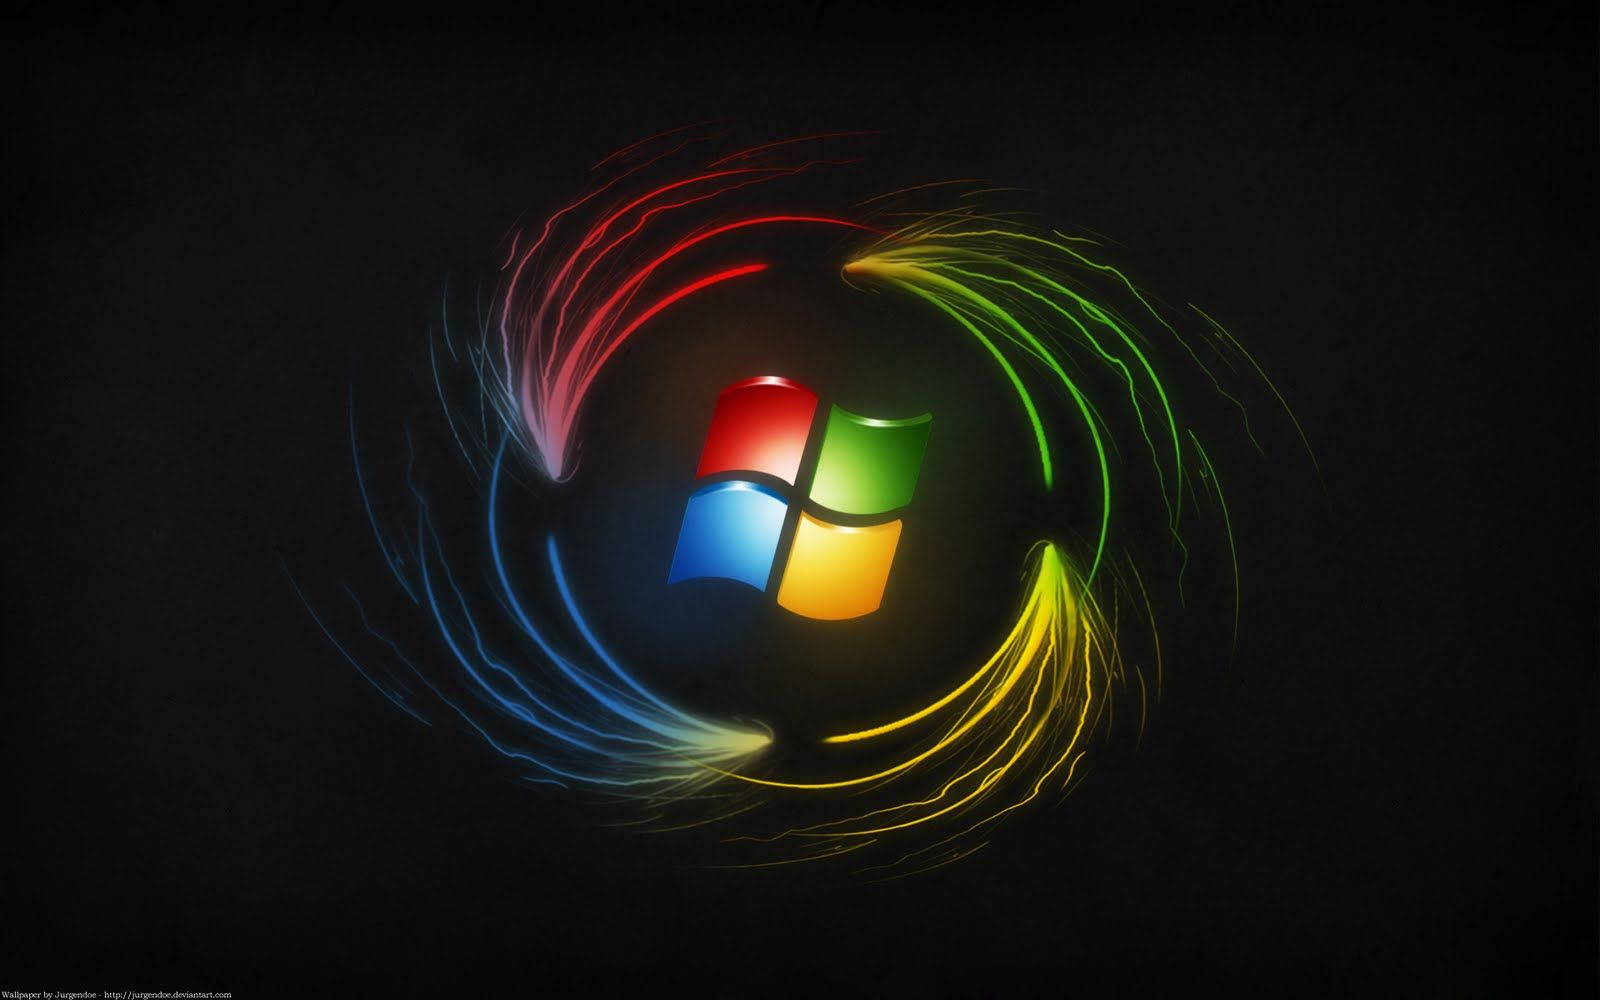 wallpaper Super Cool Windows 8 Wallpapers HD Places to Visit